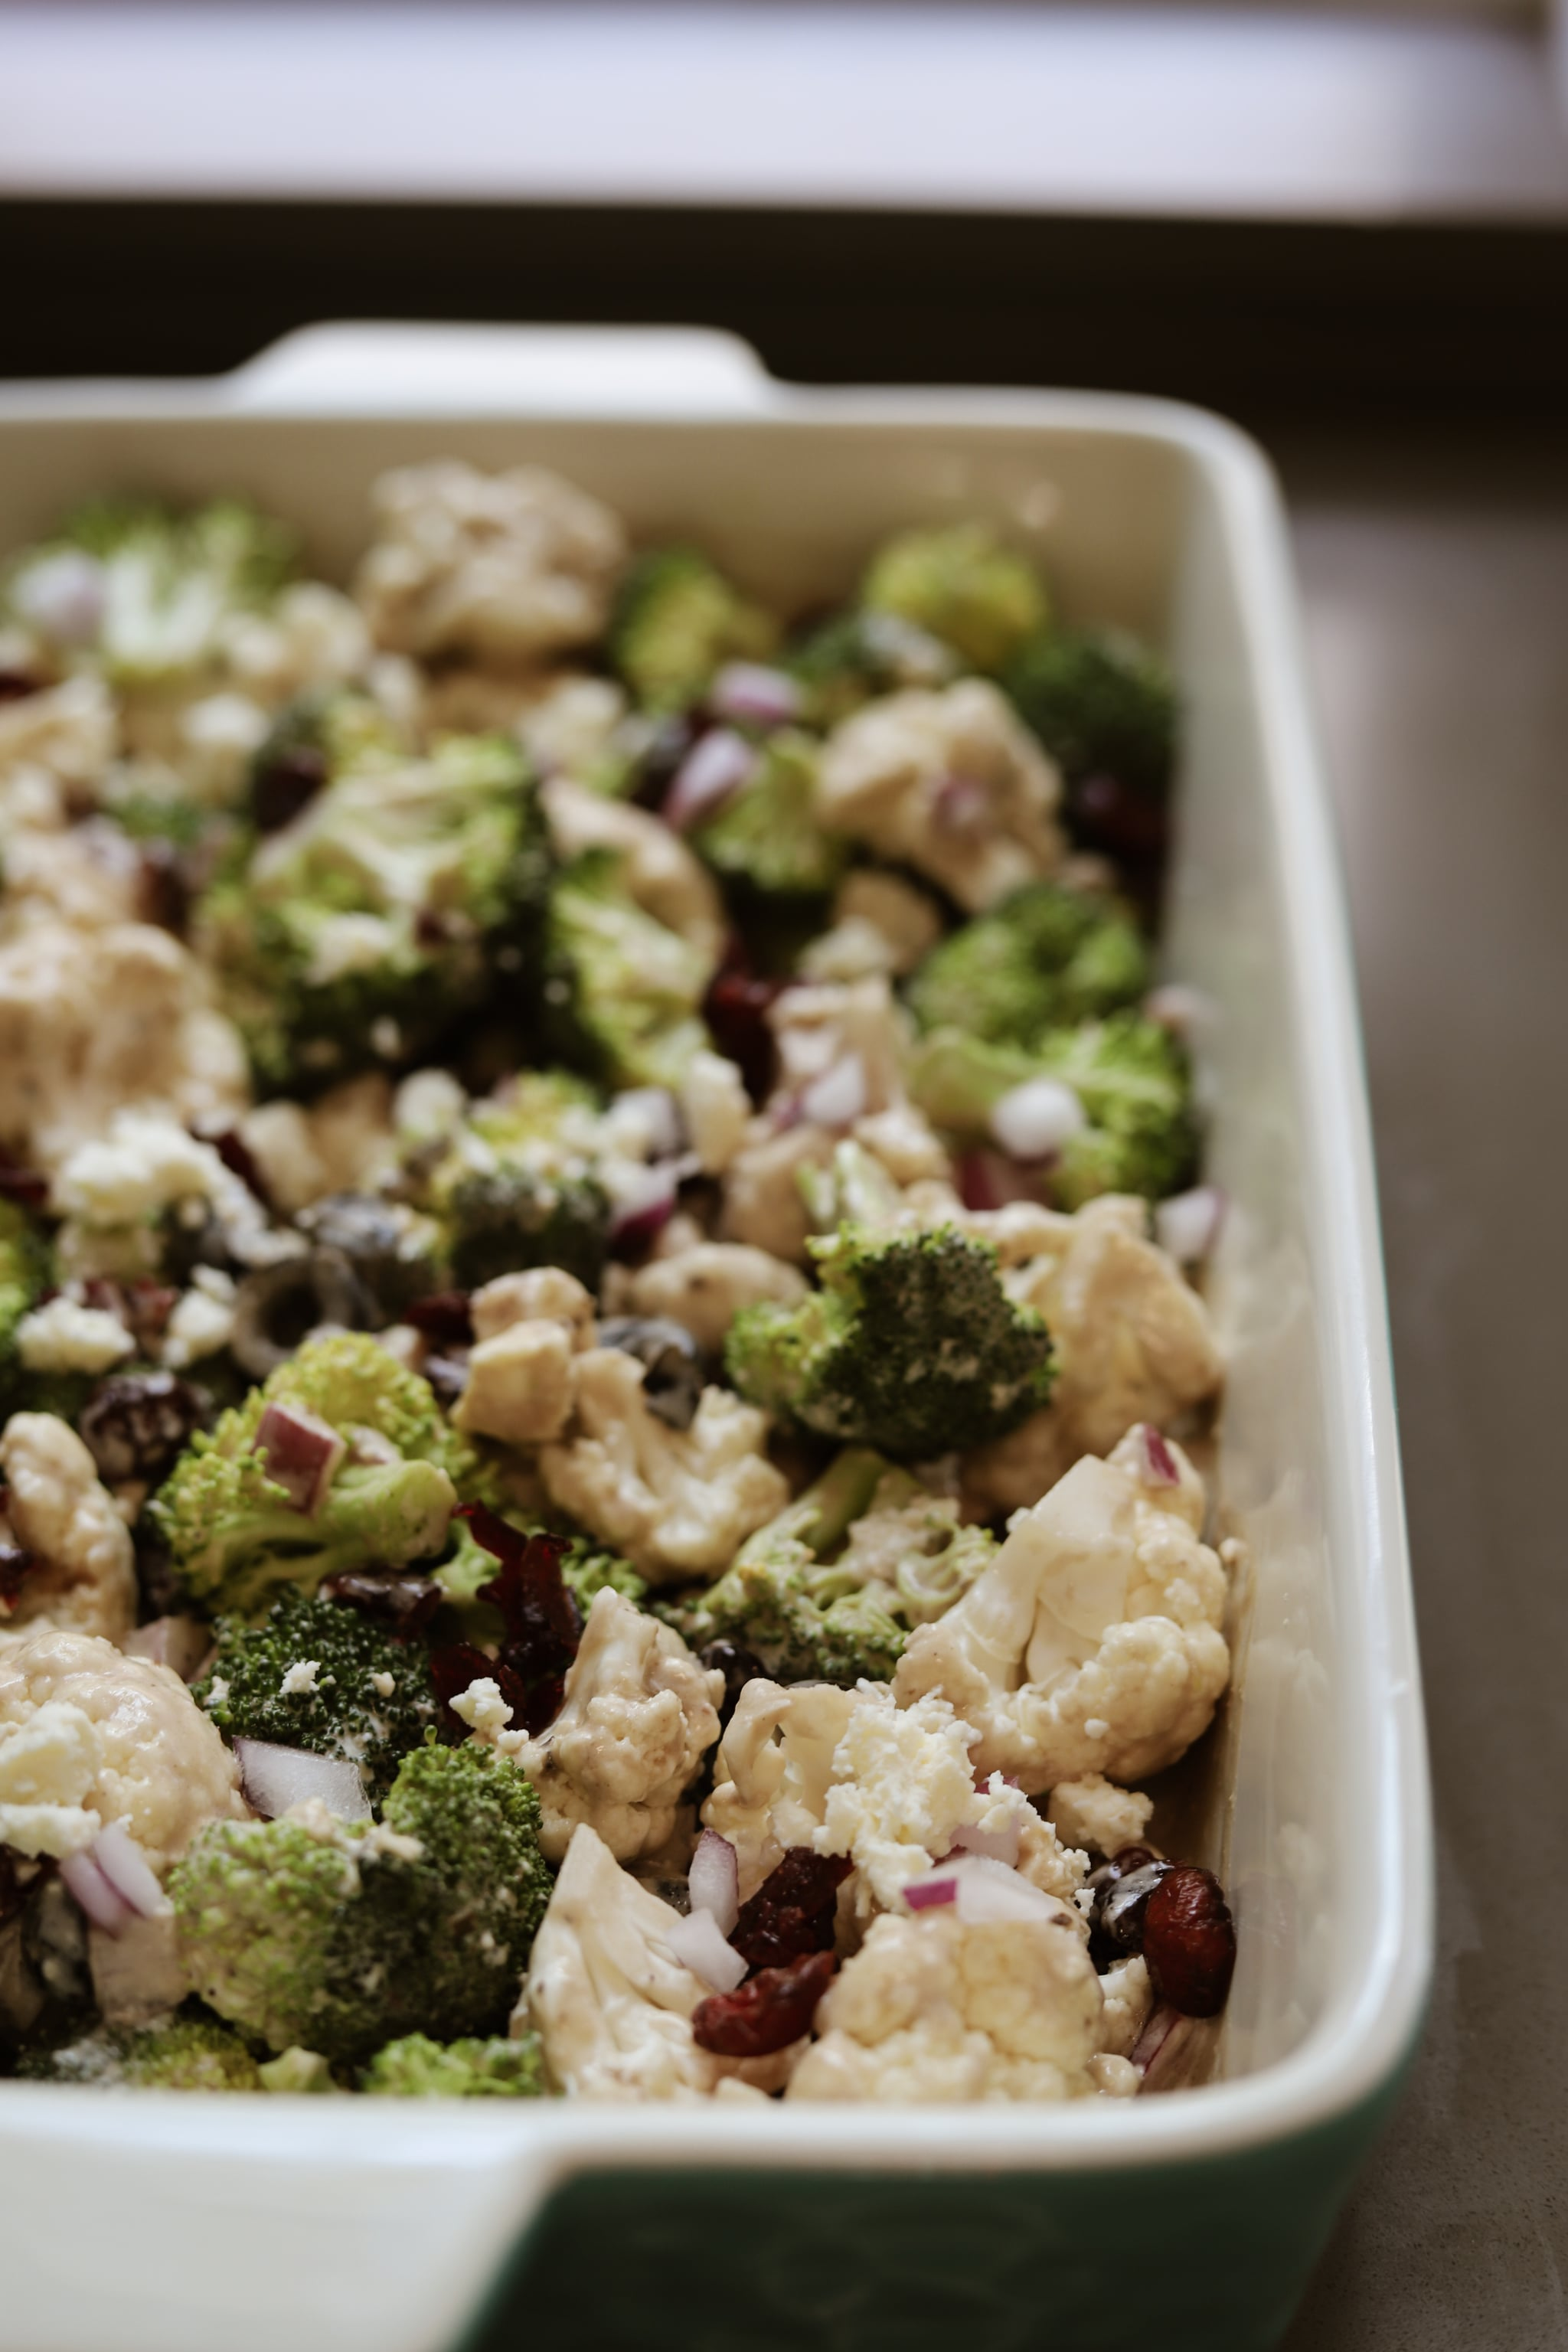 5 Minutes Is All You Need to Make This Delicious Broccoli and Cauliflower Salad